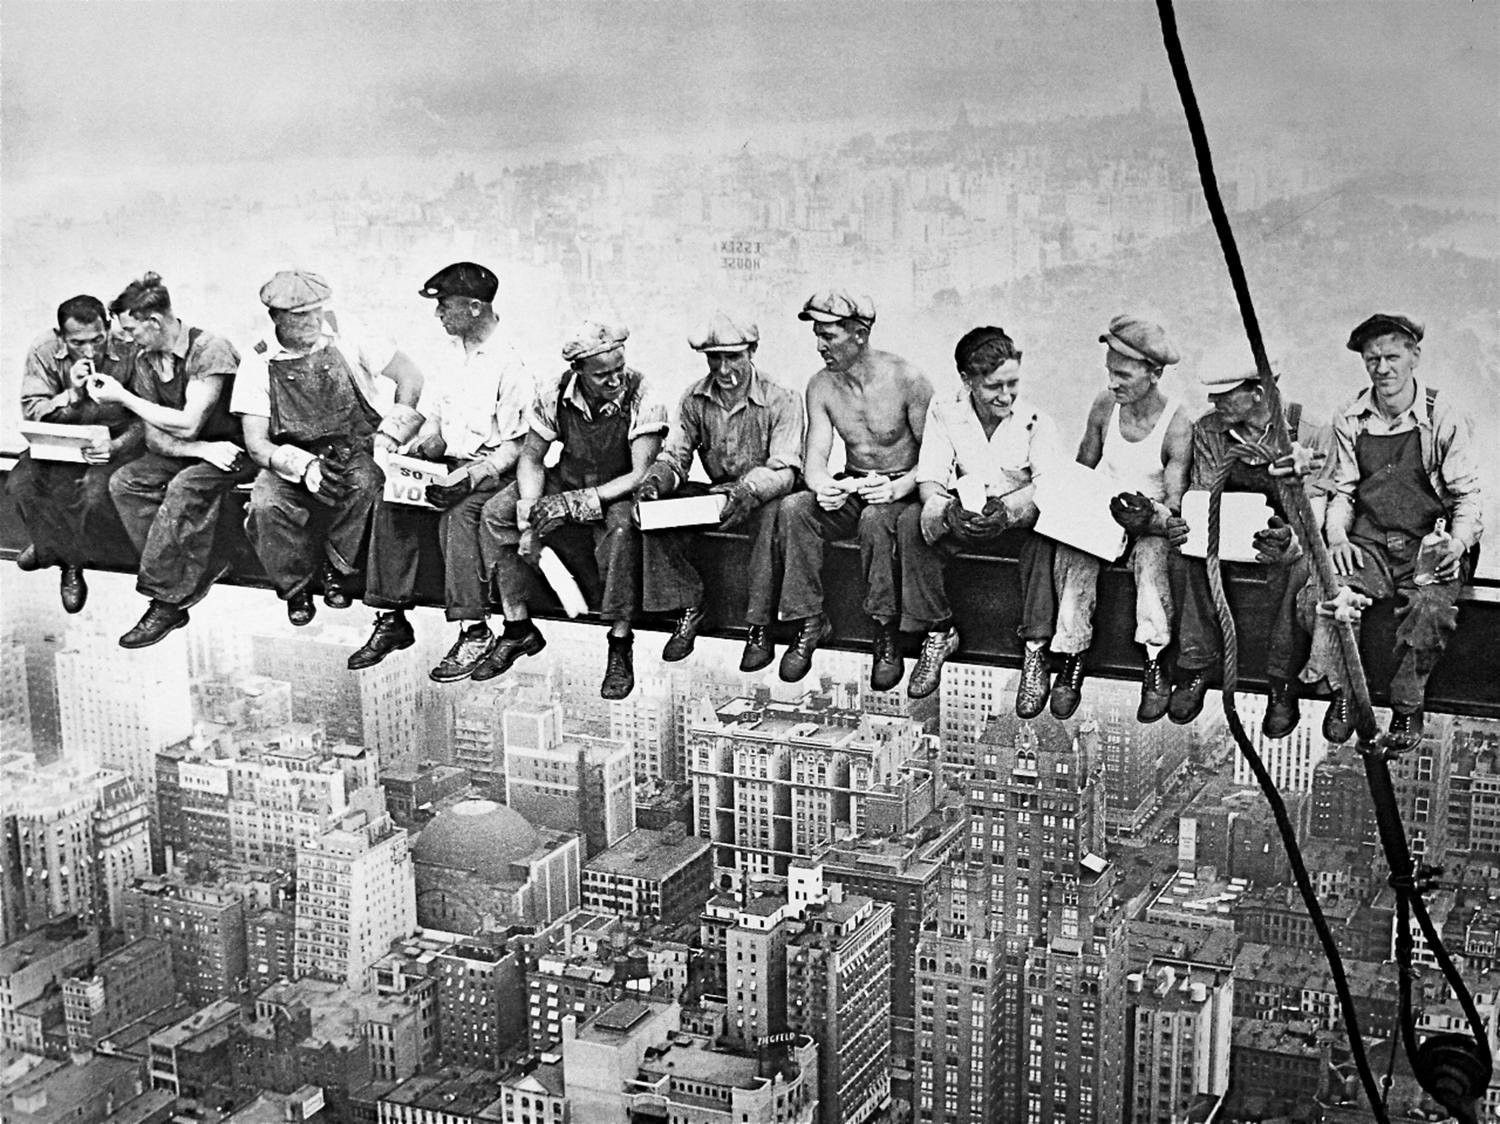 Men On Steel Beam Lunchtime Atop Nyc By John C Ebbets